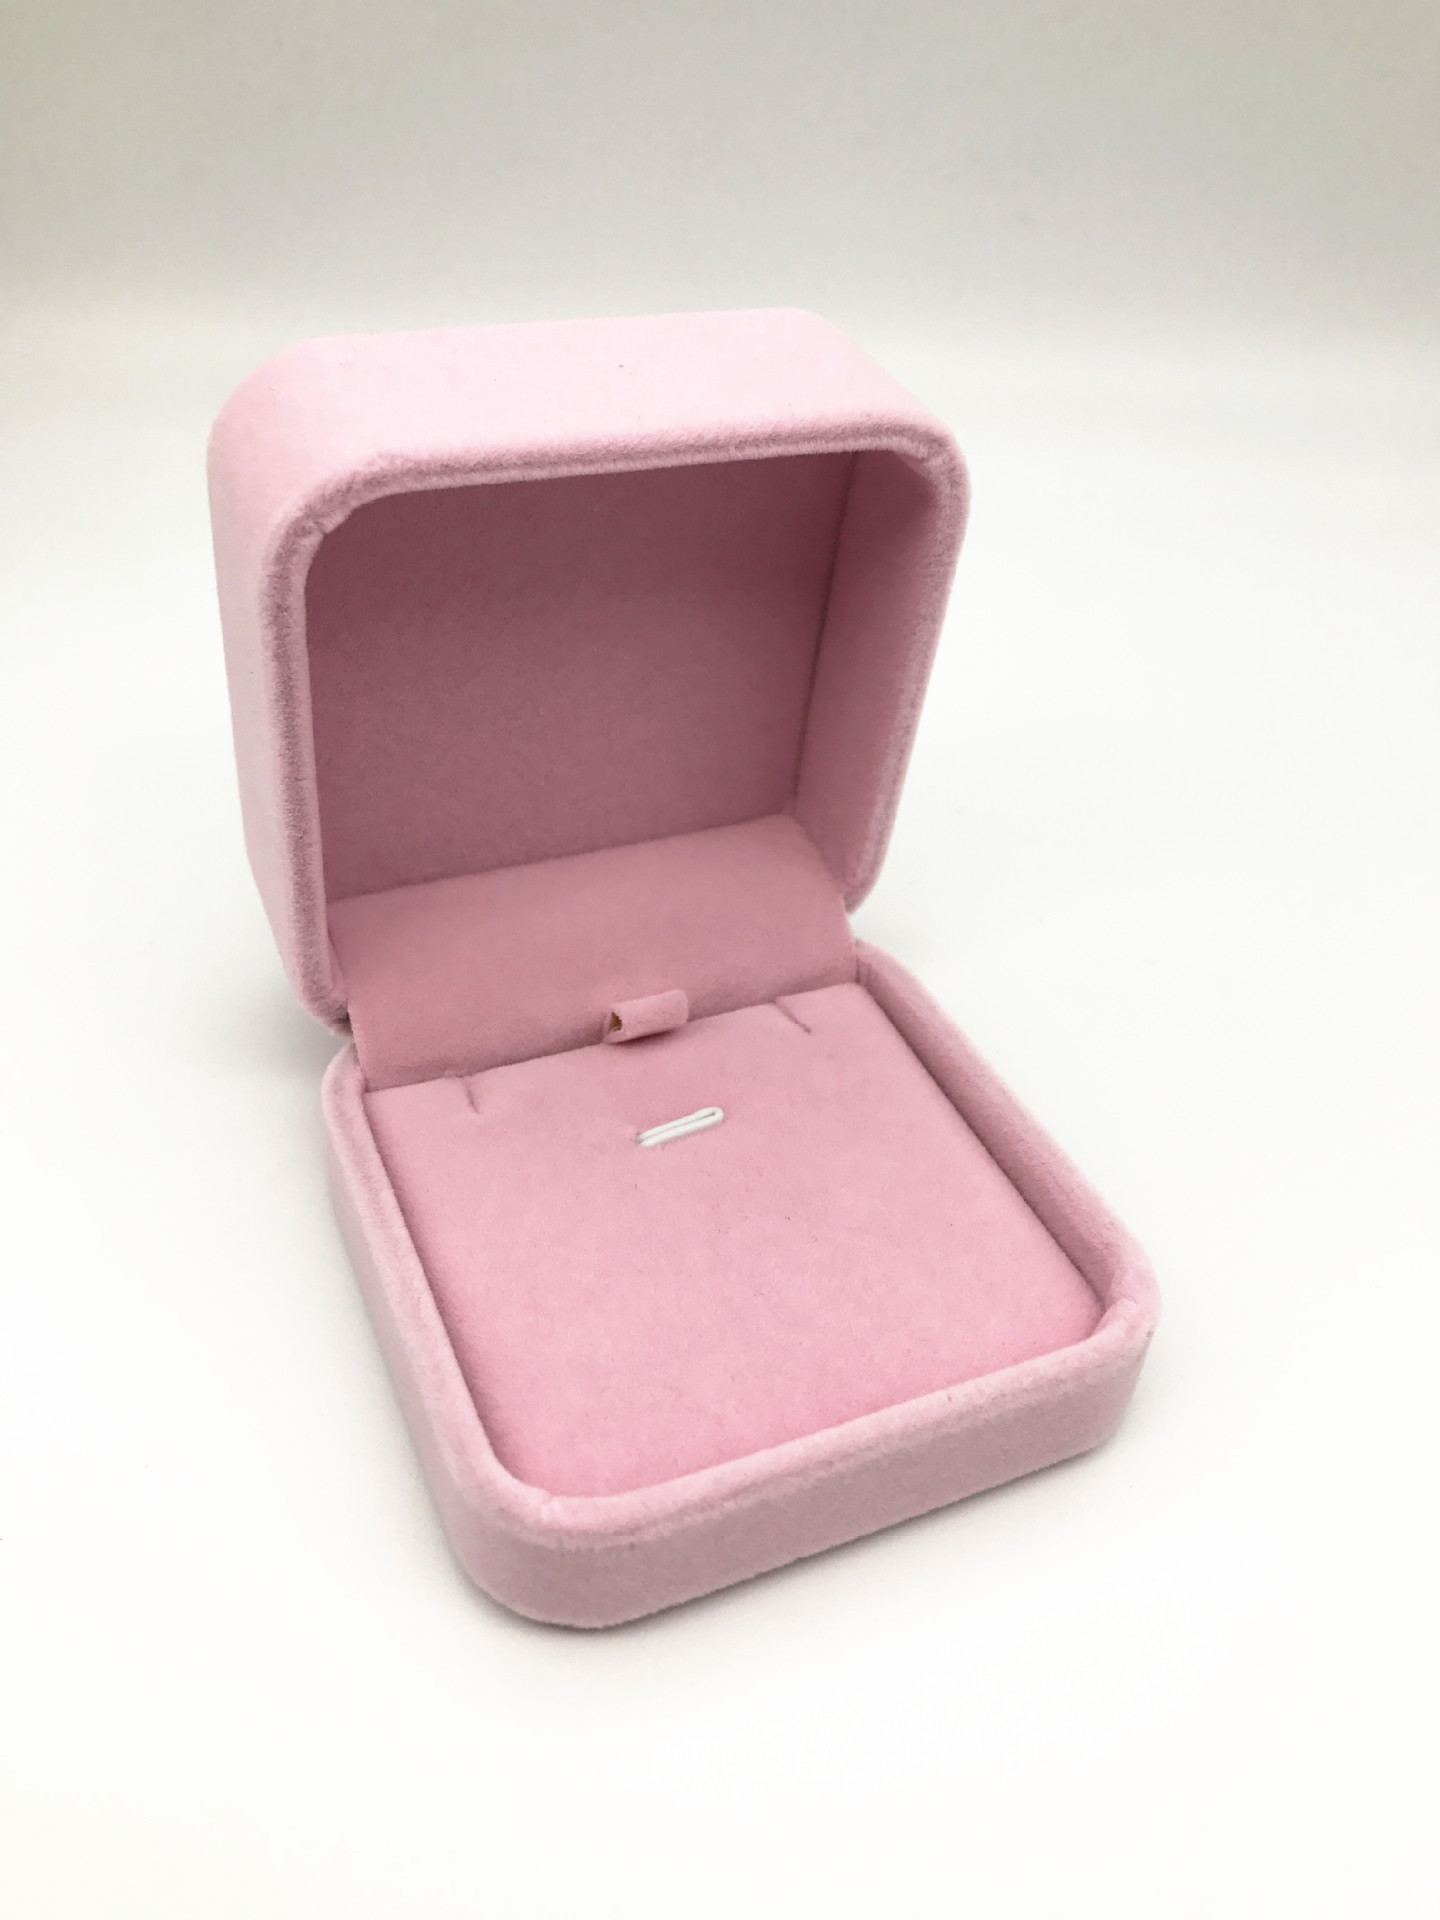 Korean-style Jewelry Wholesale Velvet Jewelry Necklace Packaging Box Pendant Gift Box Top Grade Fashion Boutique Box